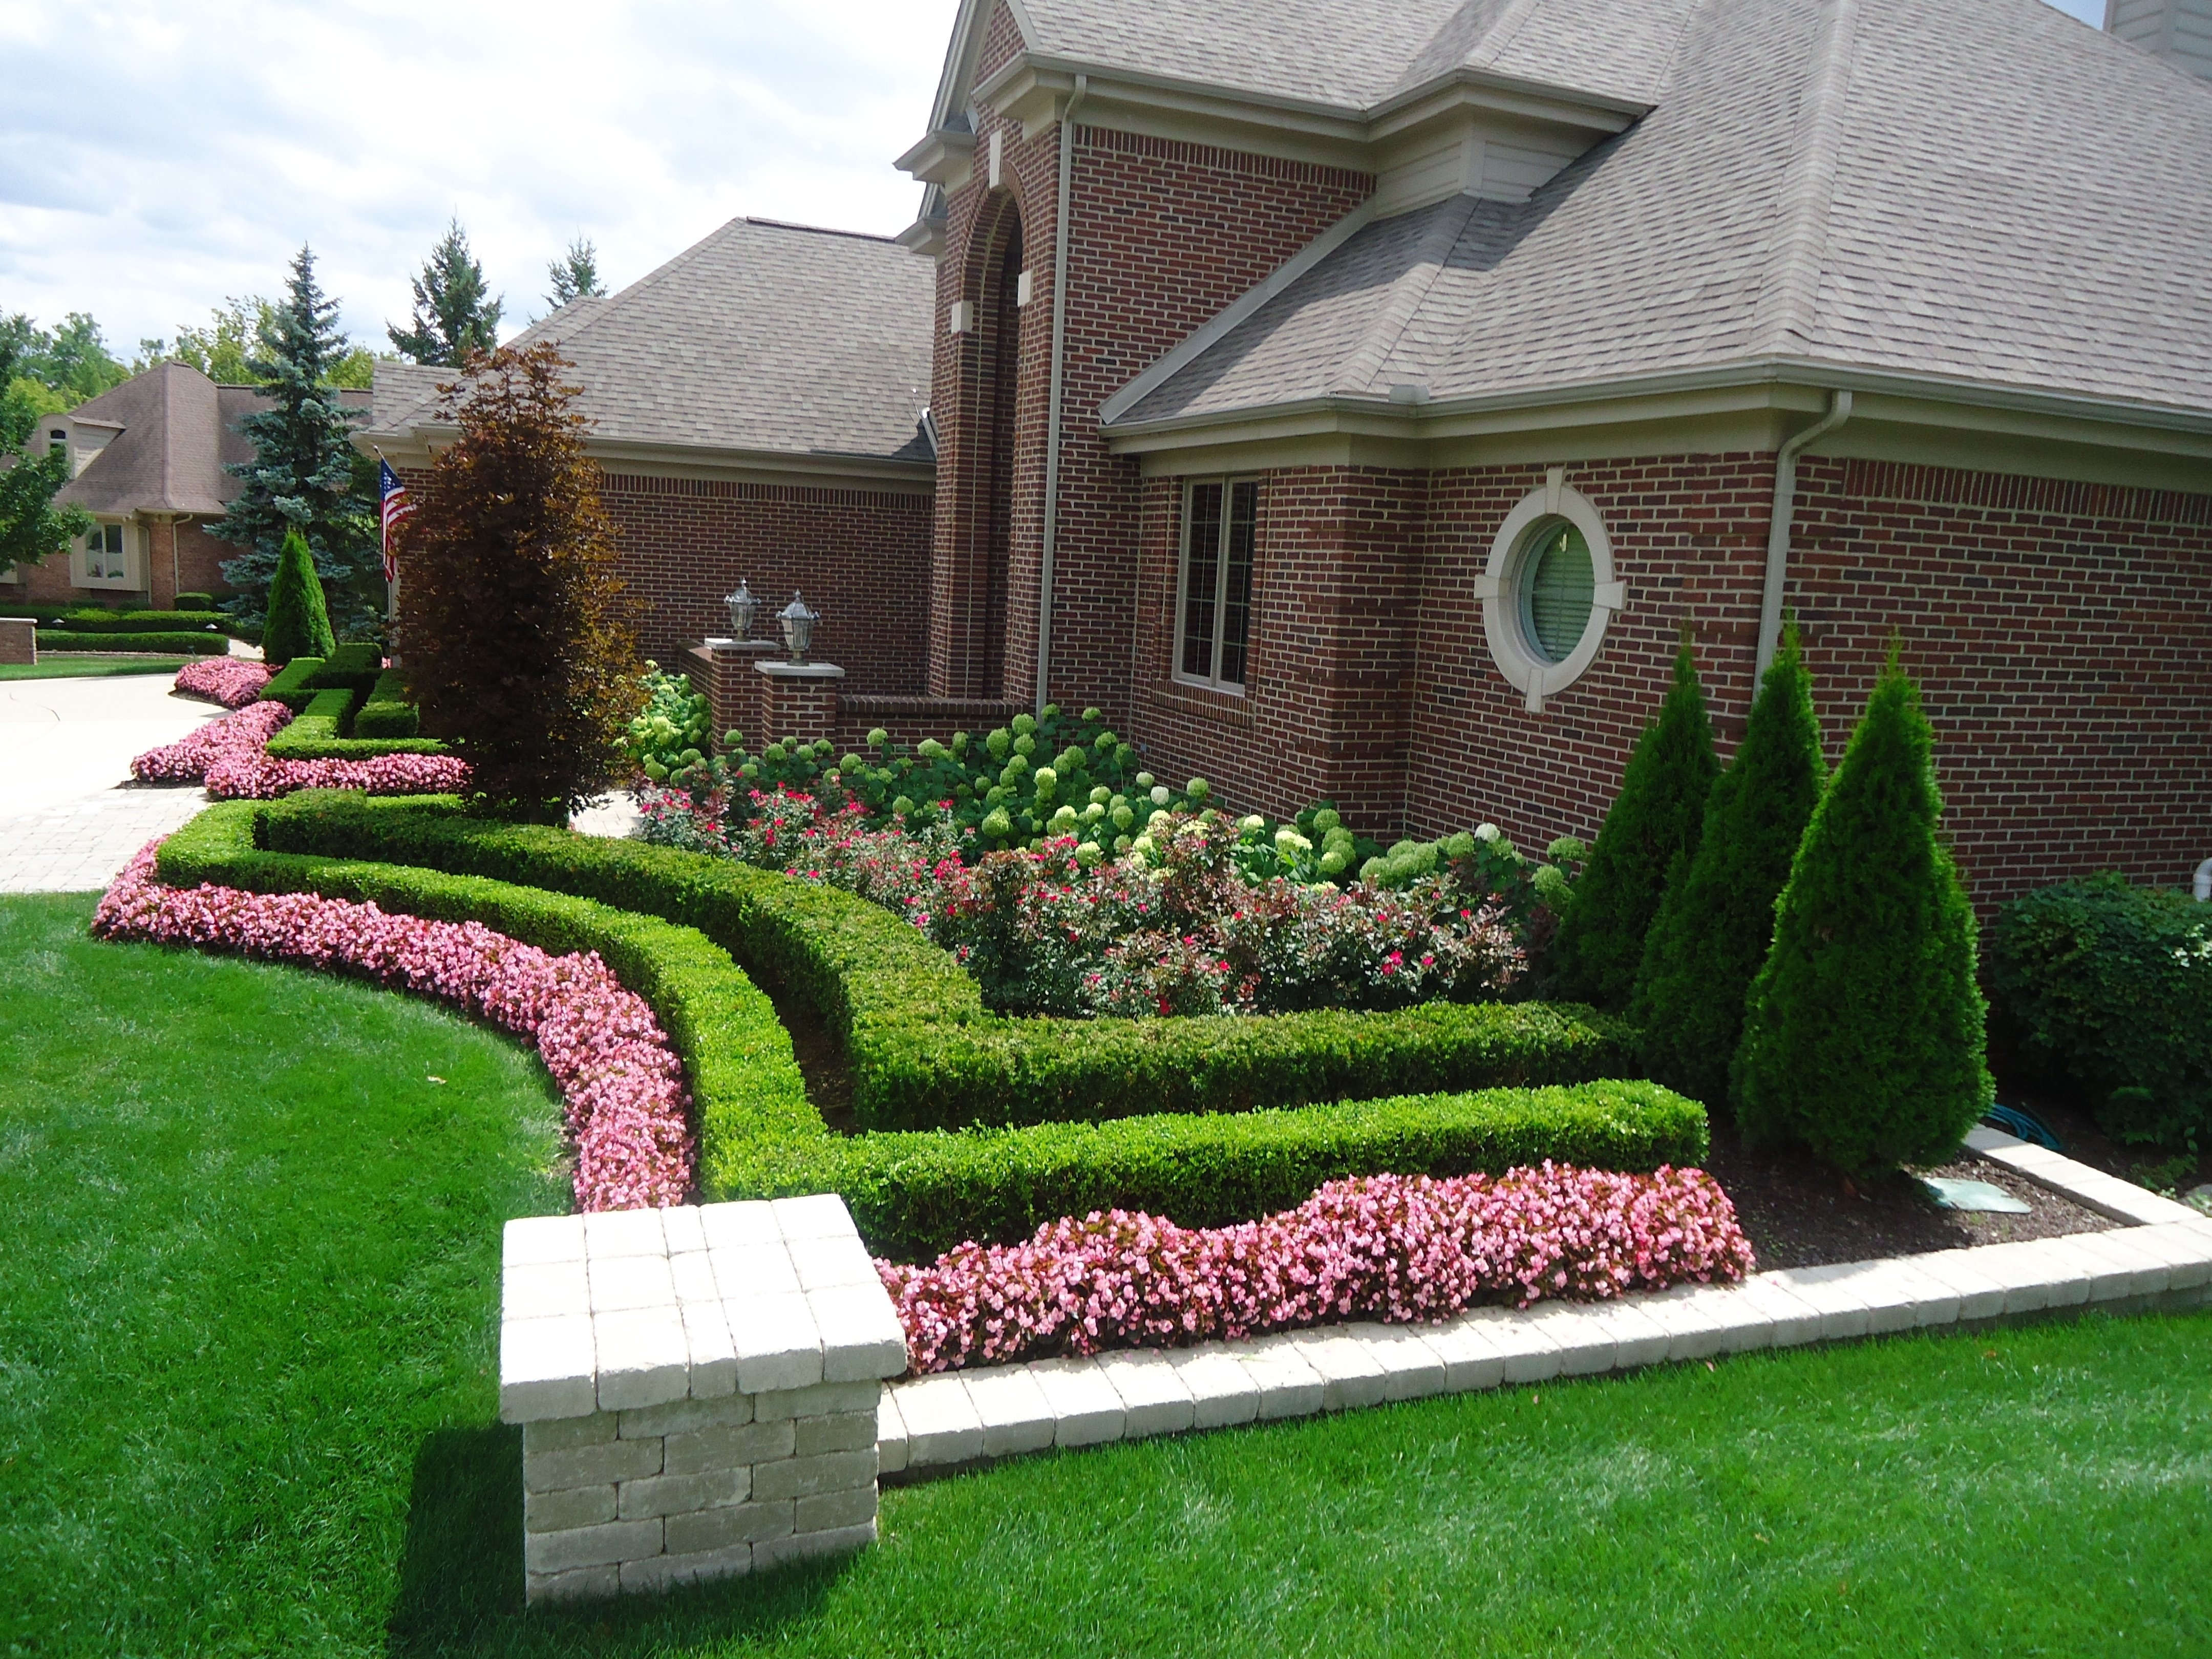 10 Nice Front Yard Landscape Design Ideas front yard landscape design ideas landscape curb appeal throughout 1